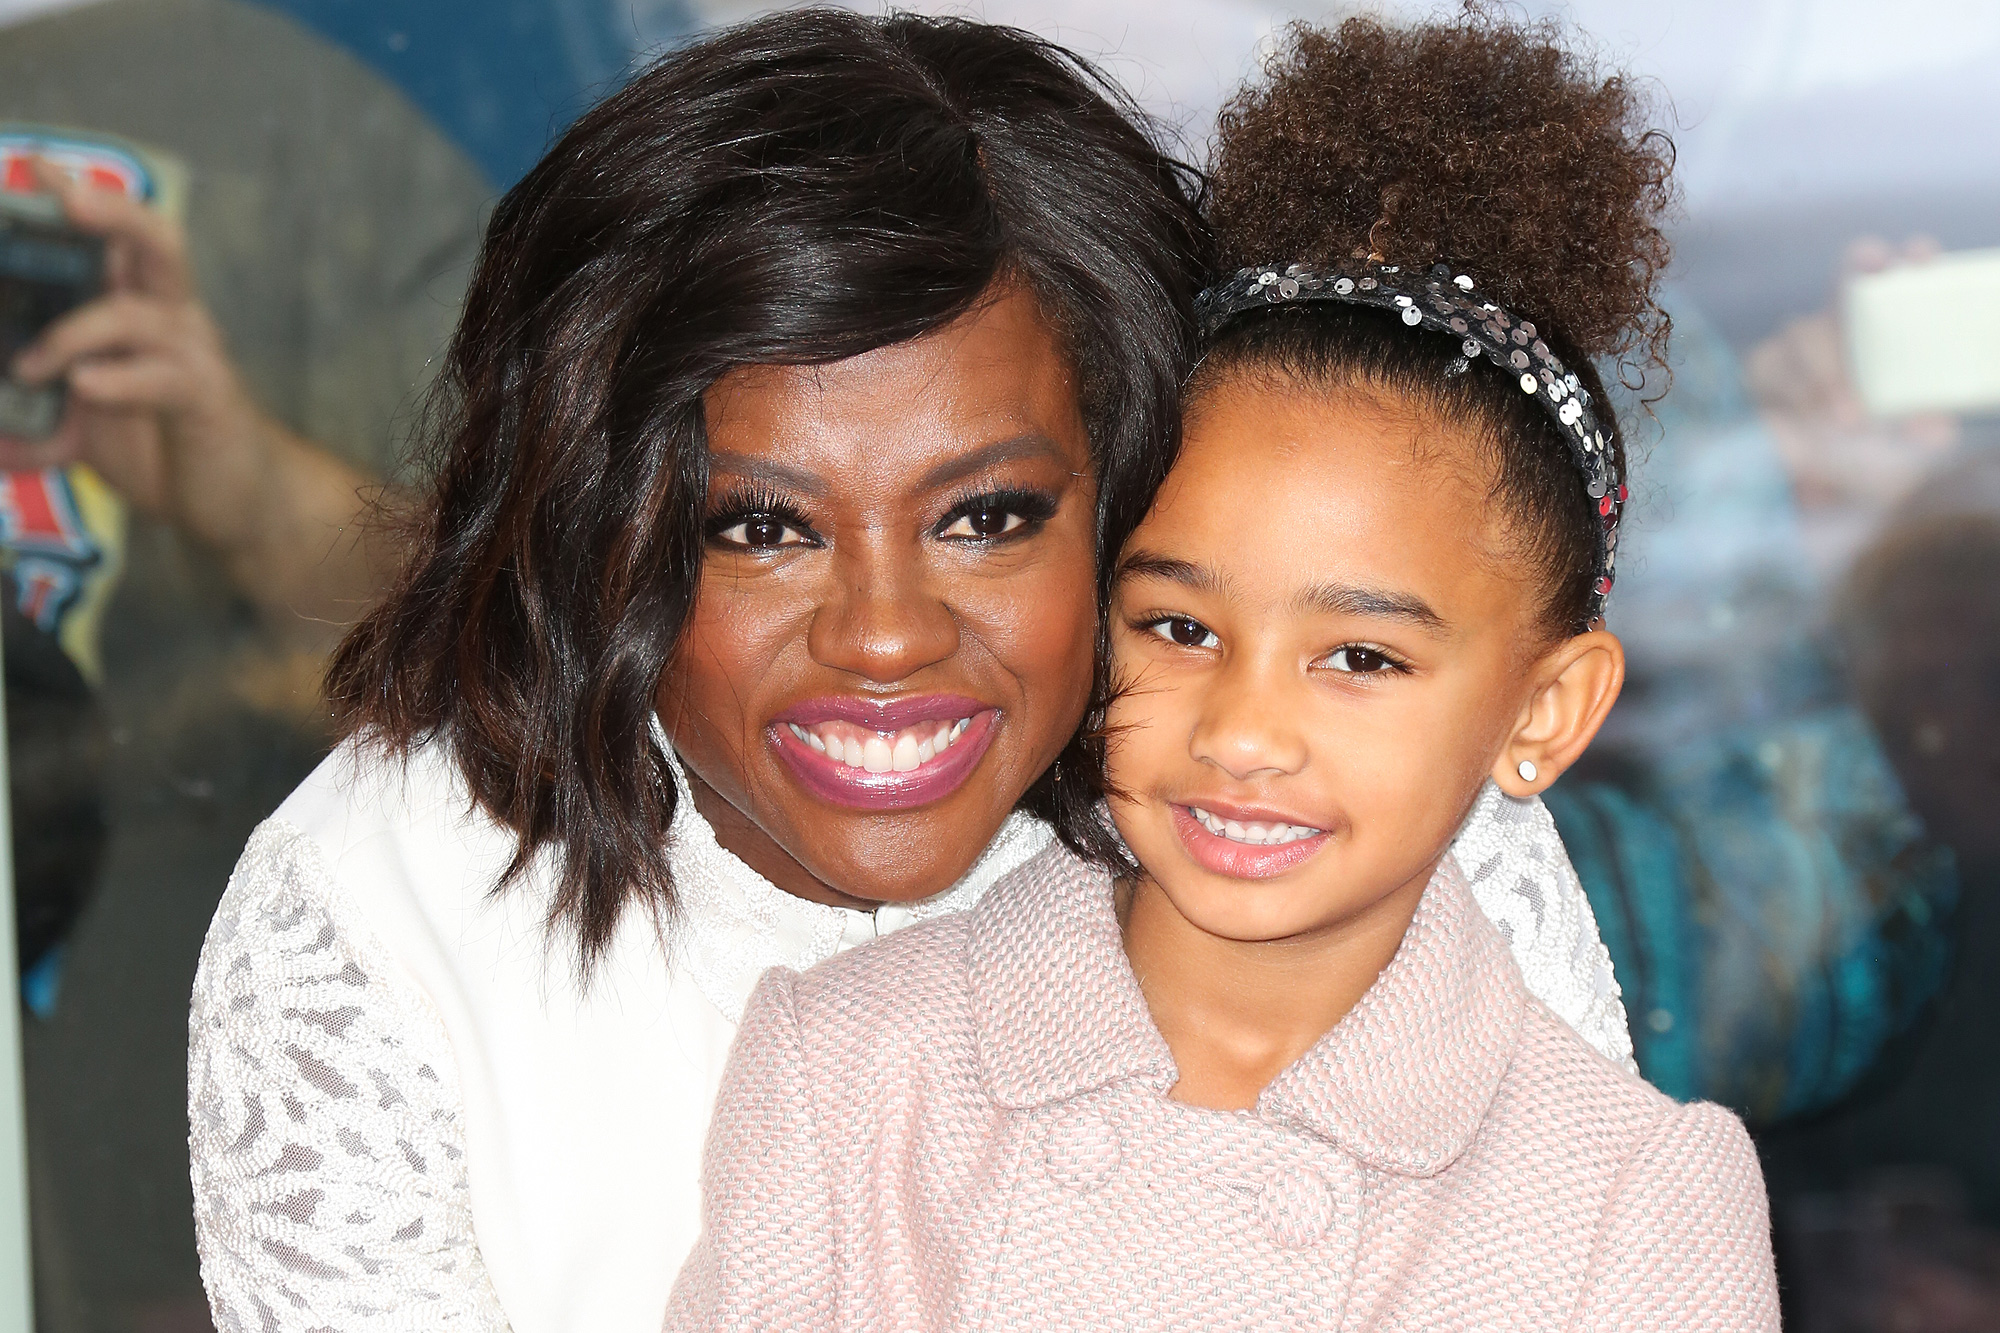 HOLLYWOOD, CA - JANUARY 05: Actress Viola Davis (L) and her Daughter Genesis Tennon (R) attend the ceremony to honor Viola Davis with a Star On The Hollywood Walk Of Fame on January 5, 2017 in Hollywood, California. (Photo by Paul Archuleta/FilmMagic)